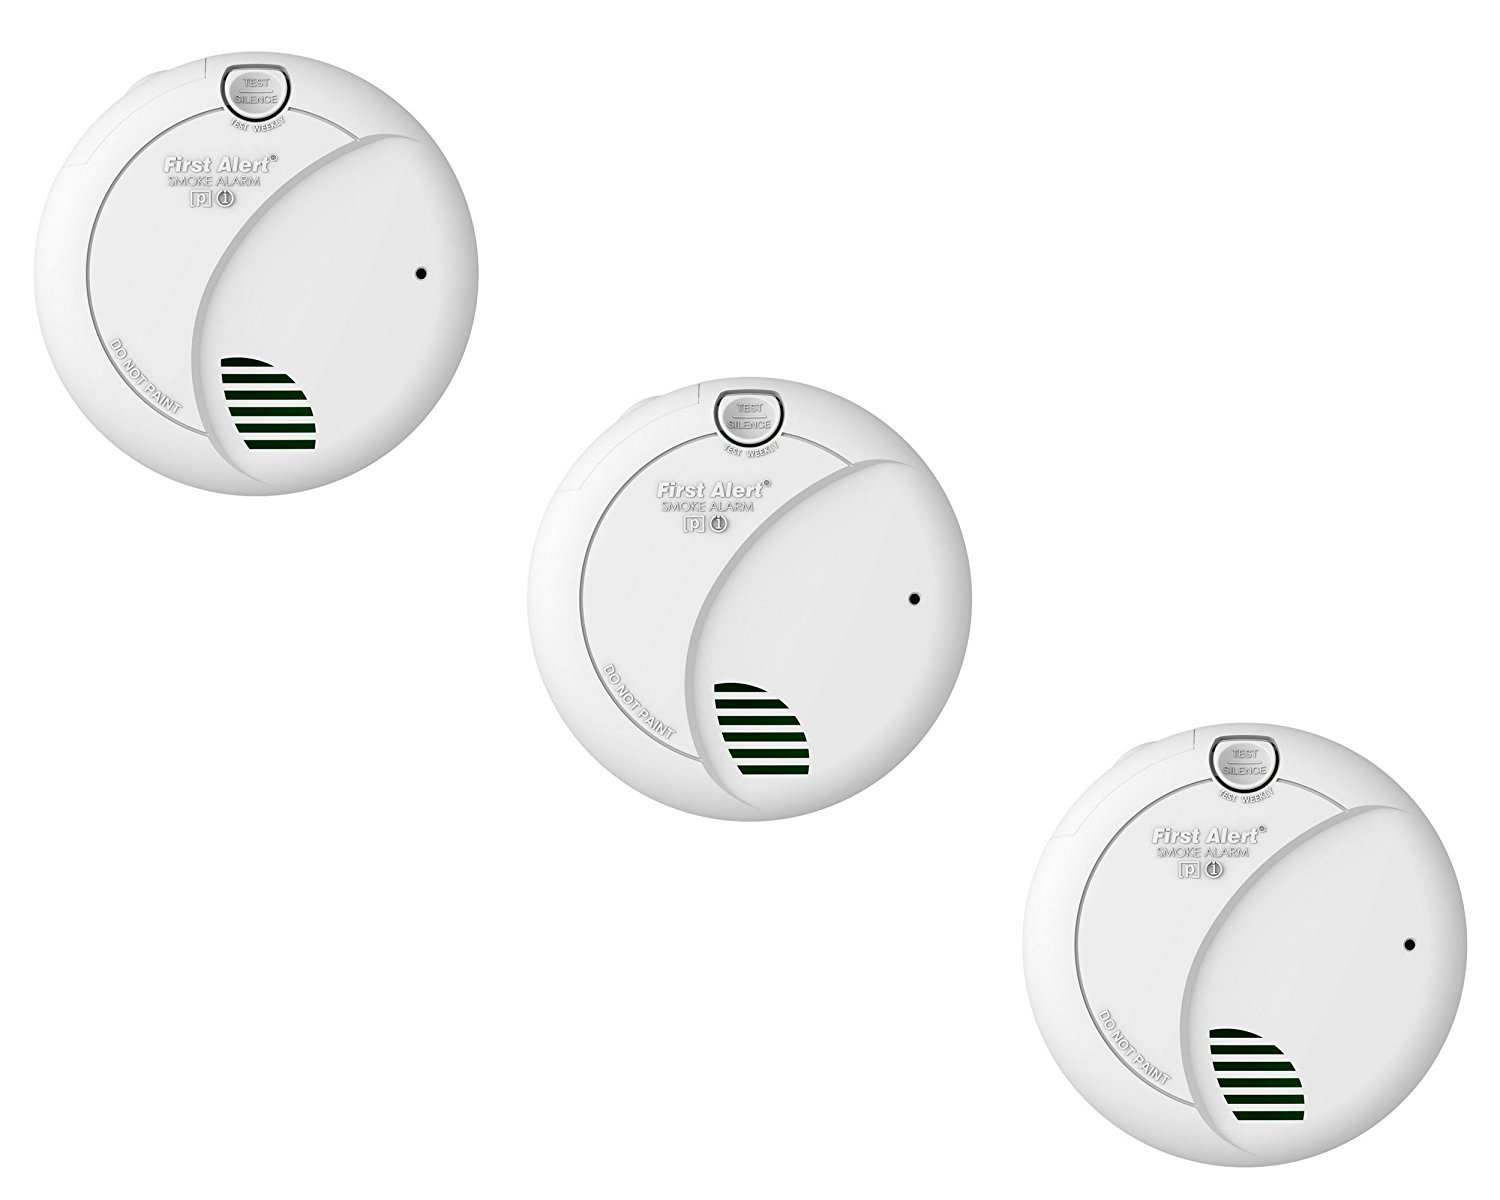 First Alert BRK 7010B Hardwire Smoke Alarm with Photoelectric Sensor and Battery Backup 3 Pack